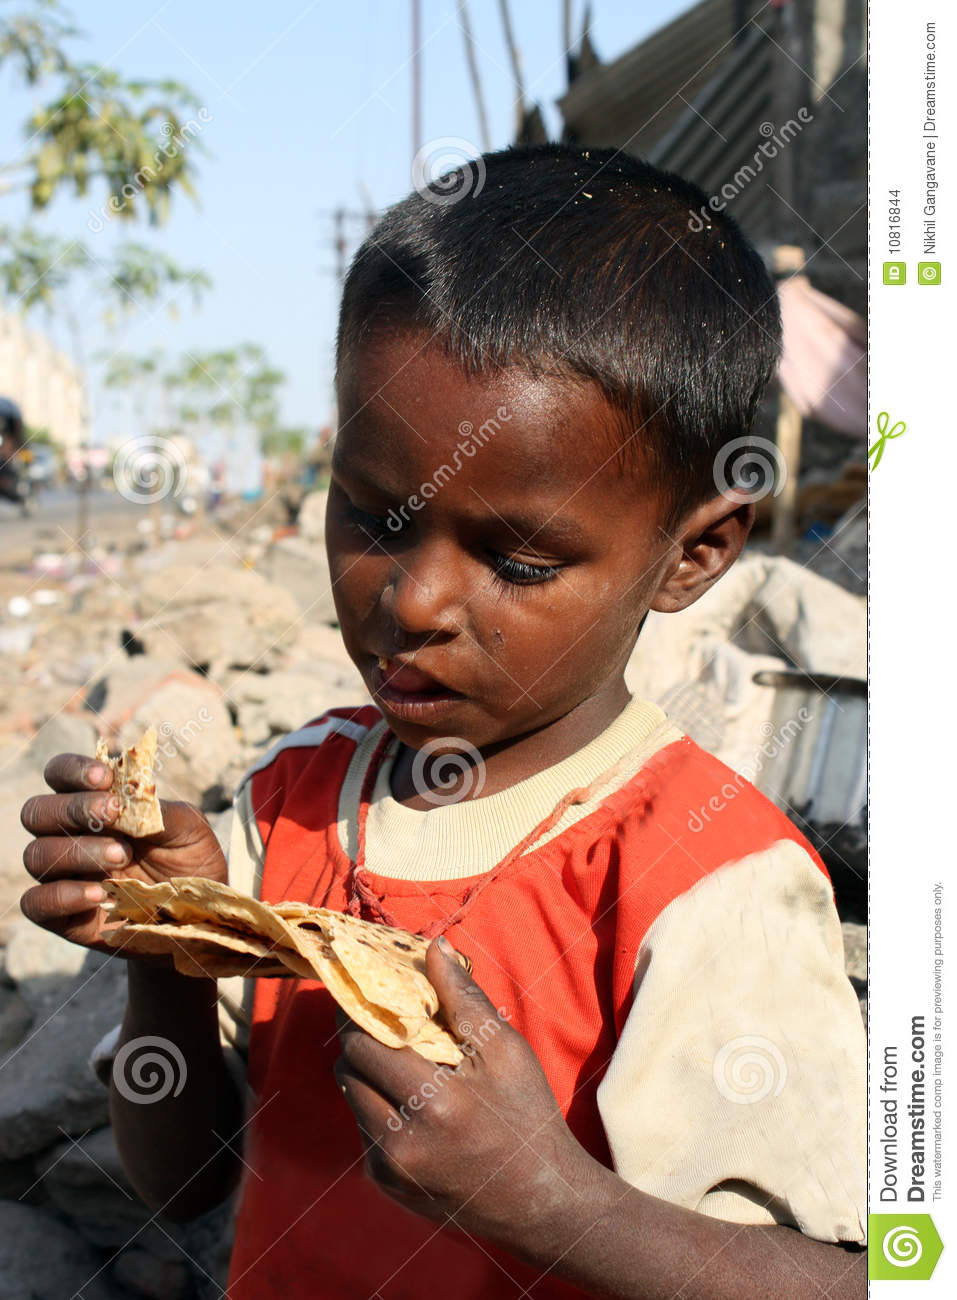 Eating Food in Poverty